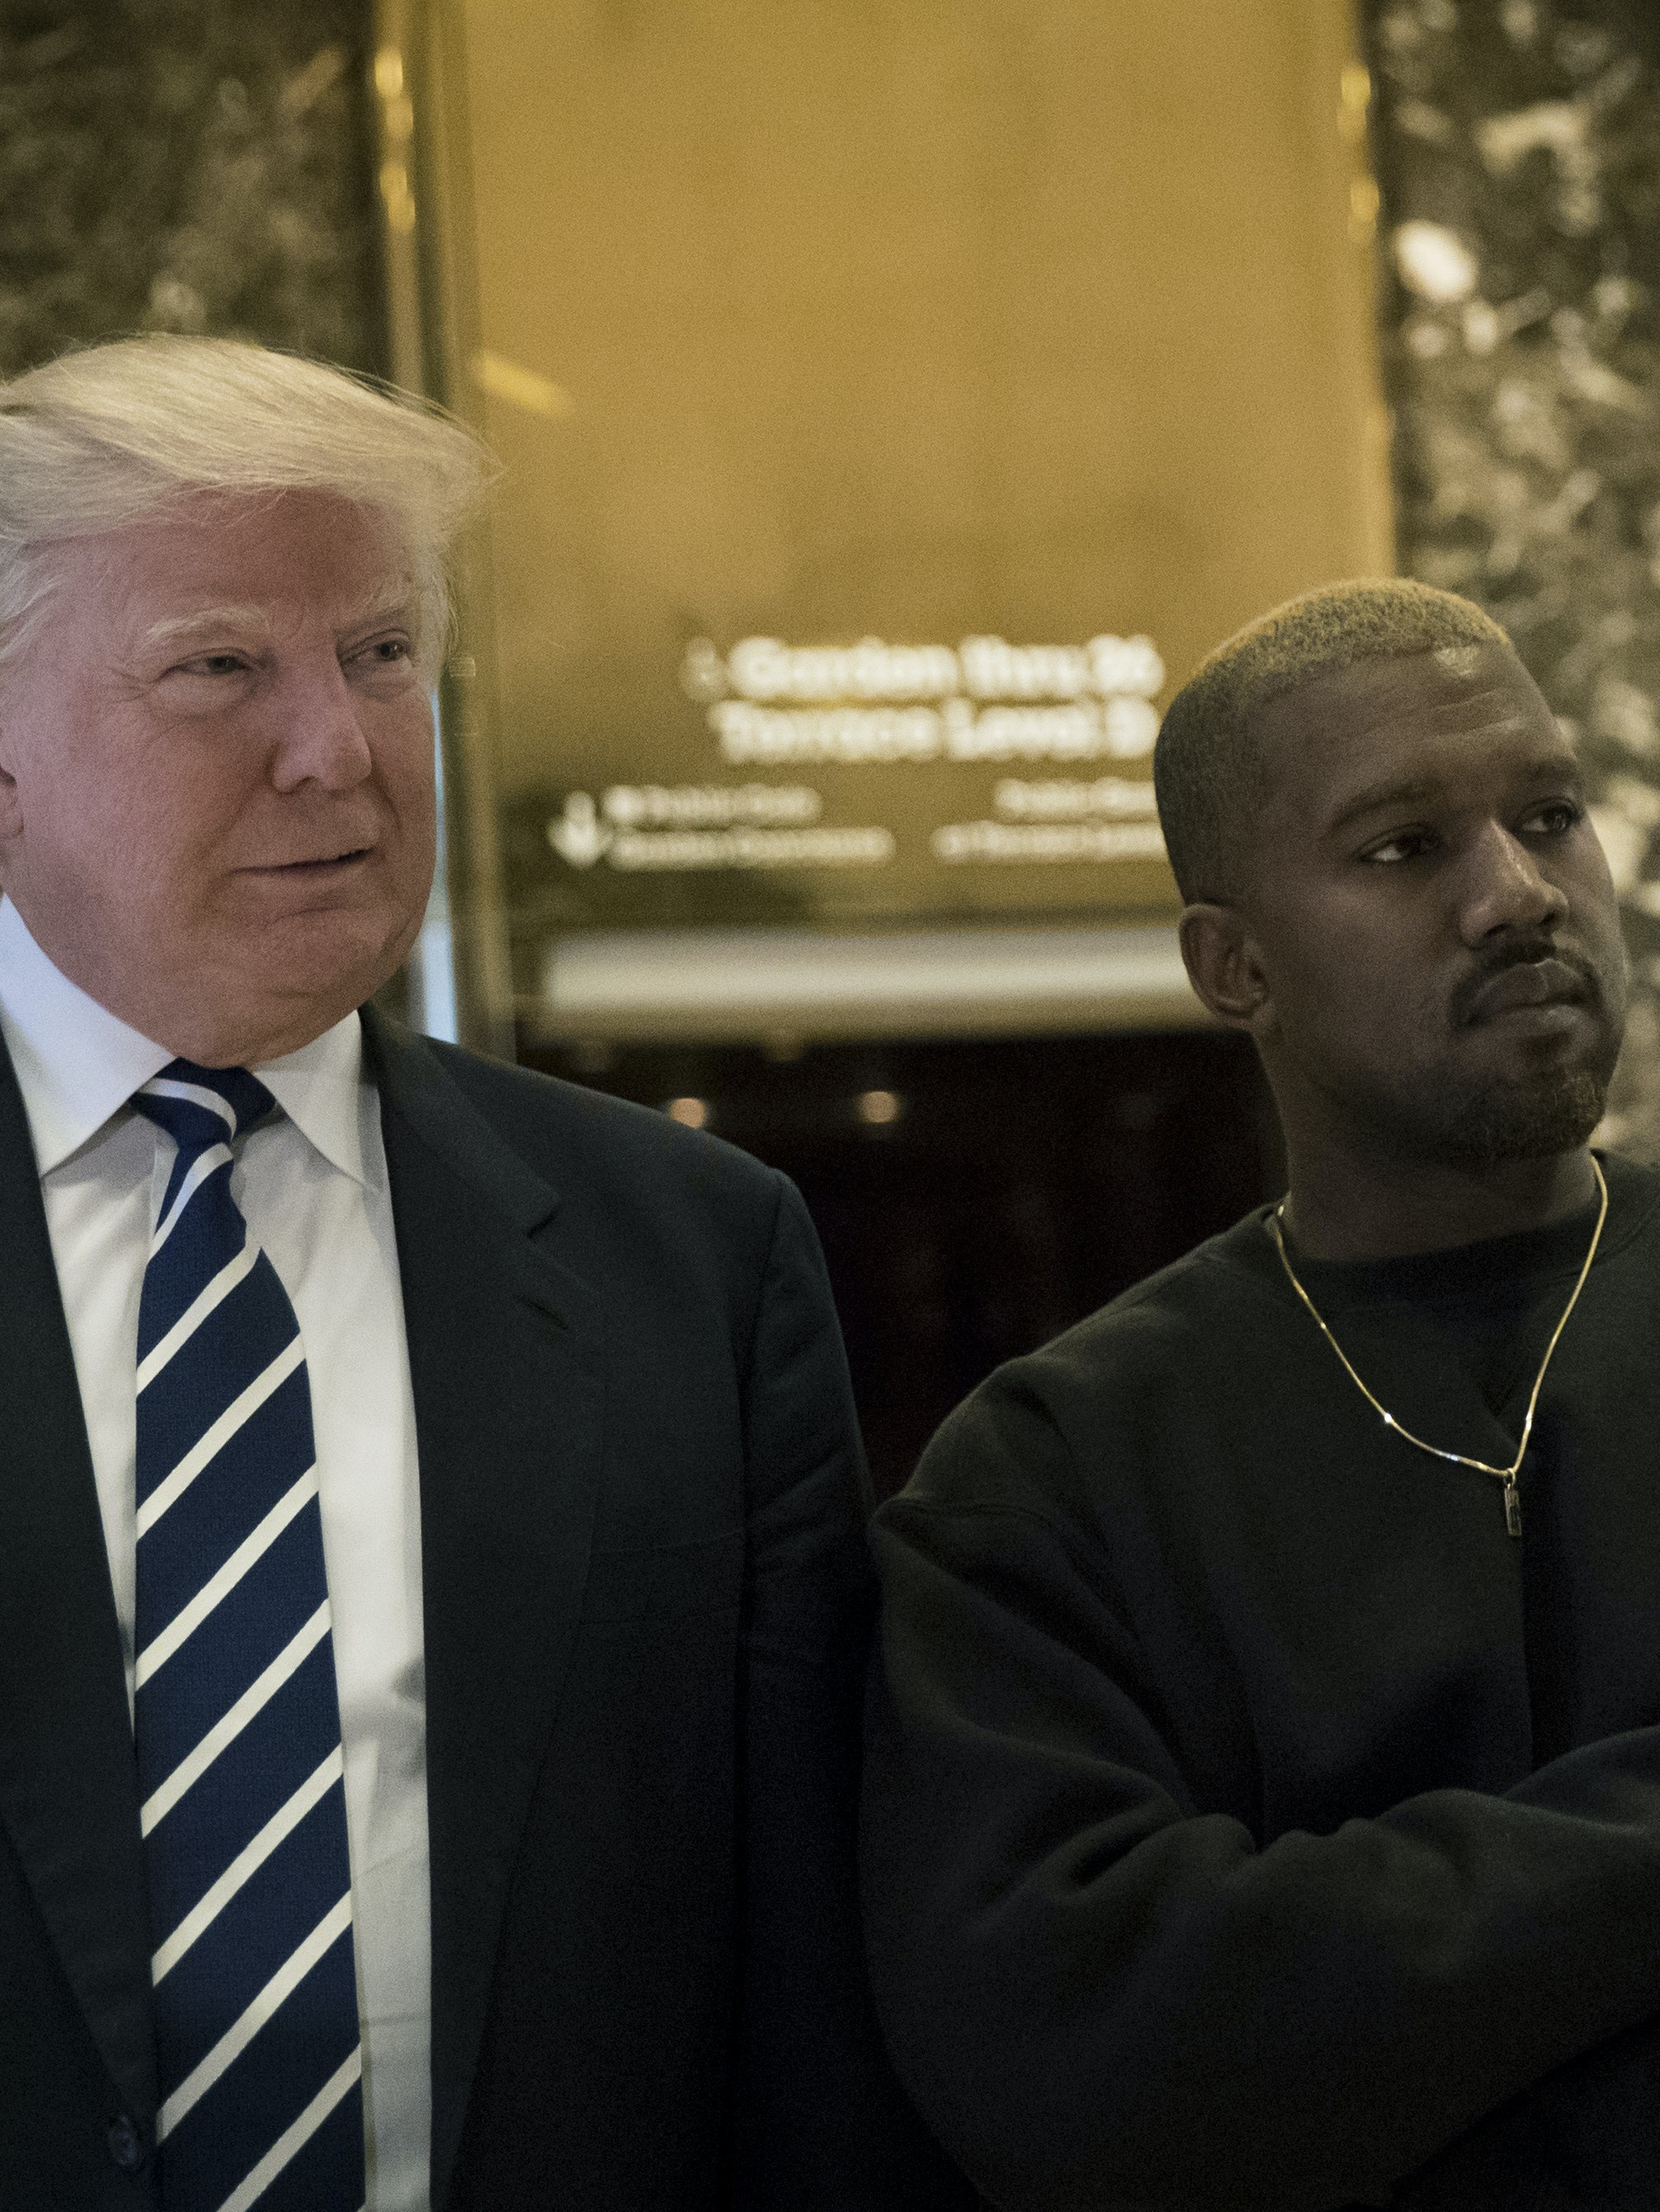 (L to R) President-elect Donald Trump and Kanye West stand together in the lobby at Trump Tower, December 13, 2016 in New York City. President-elect Donald Trump and his transition team are in the process of filling cabinet and other high level positions for the new administration.